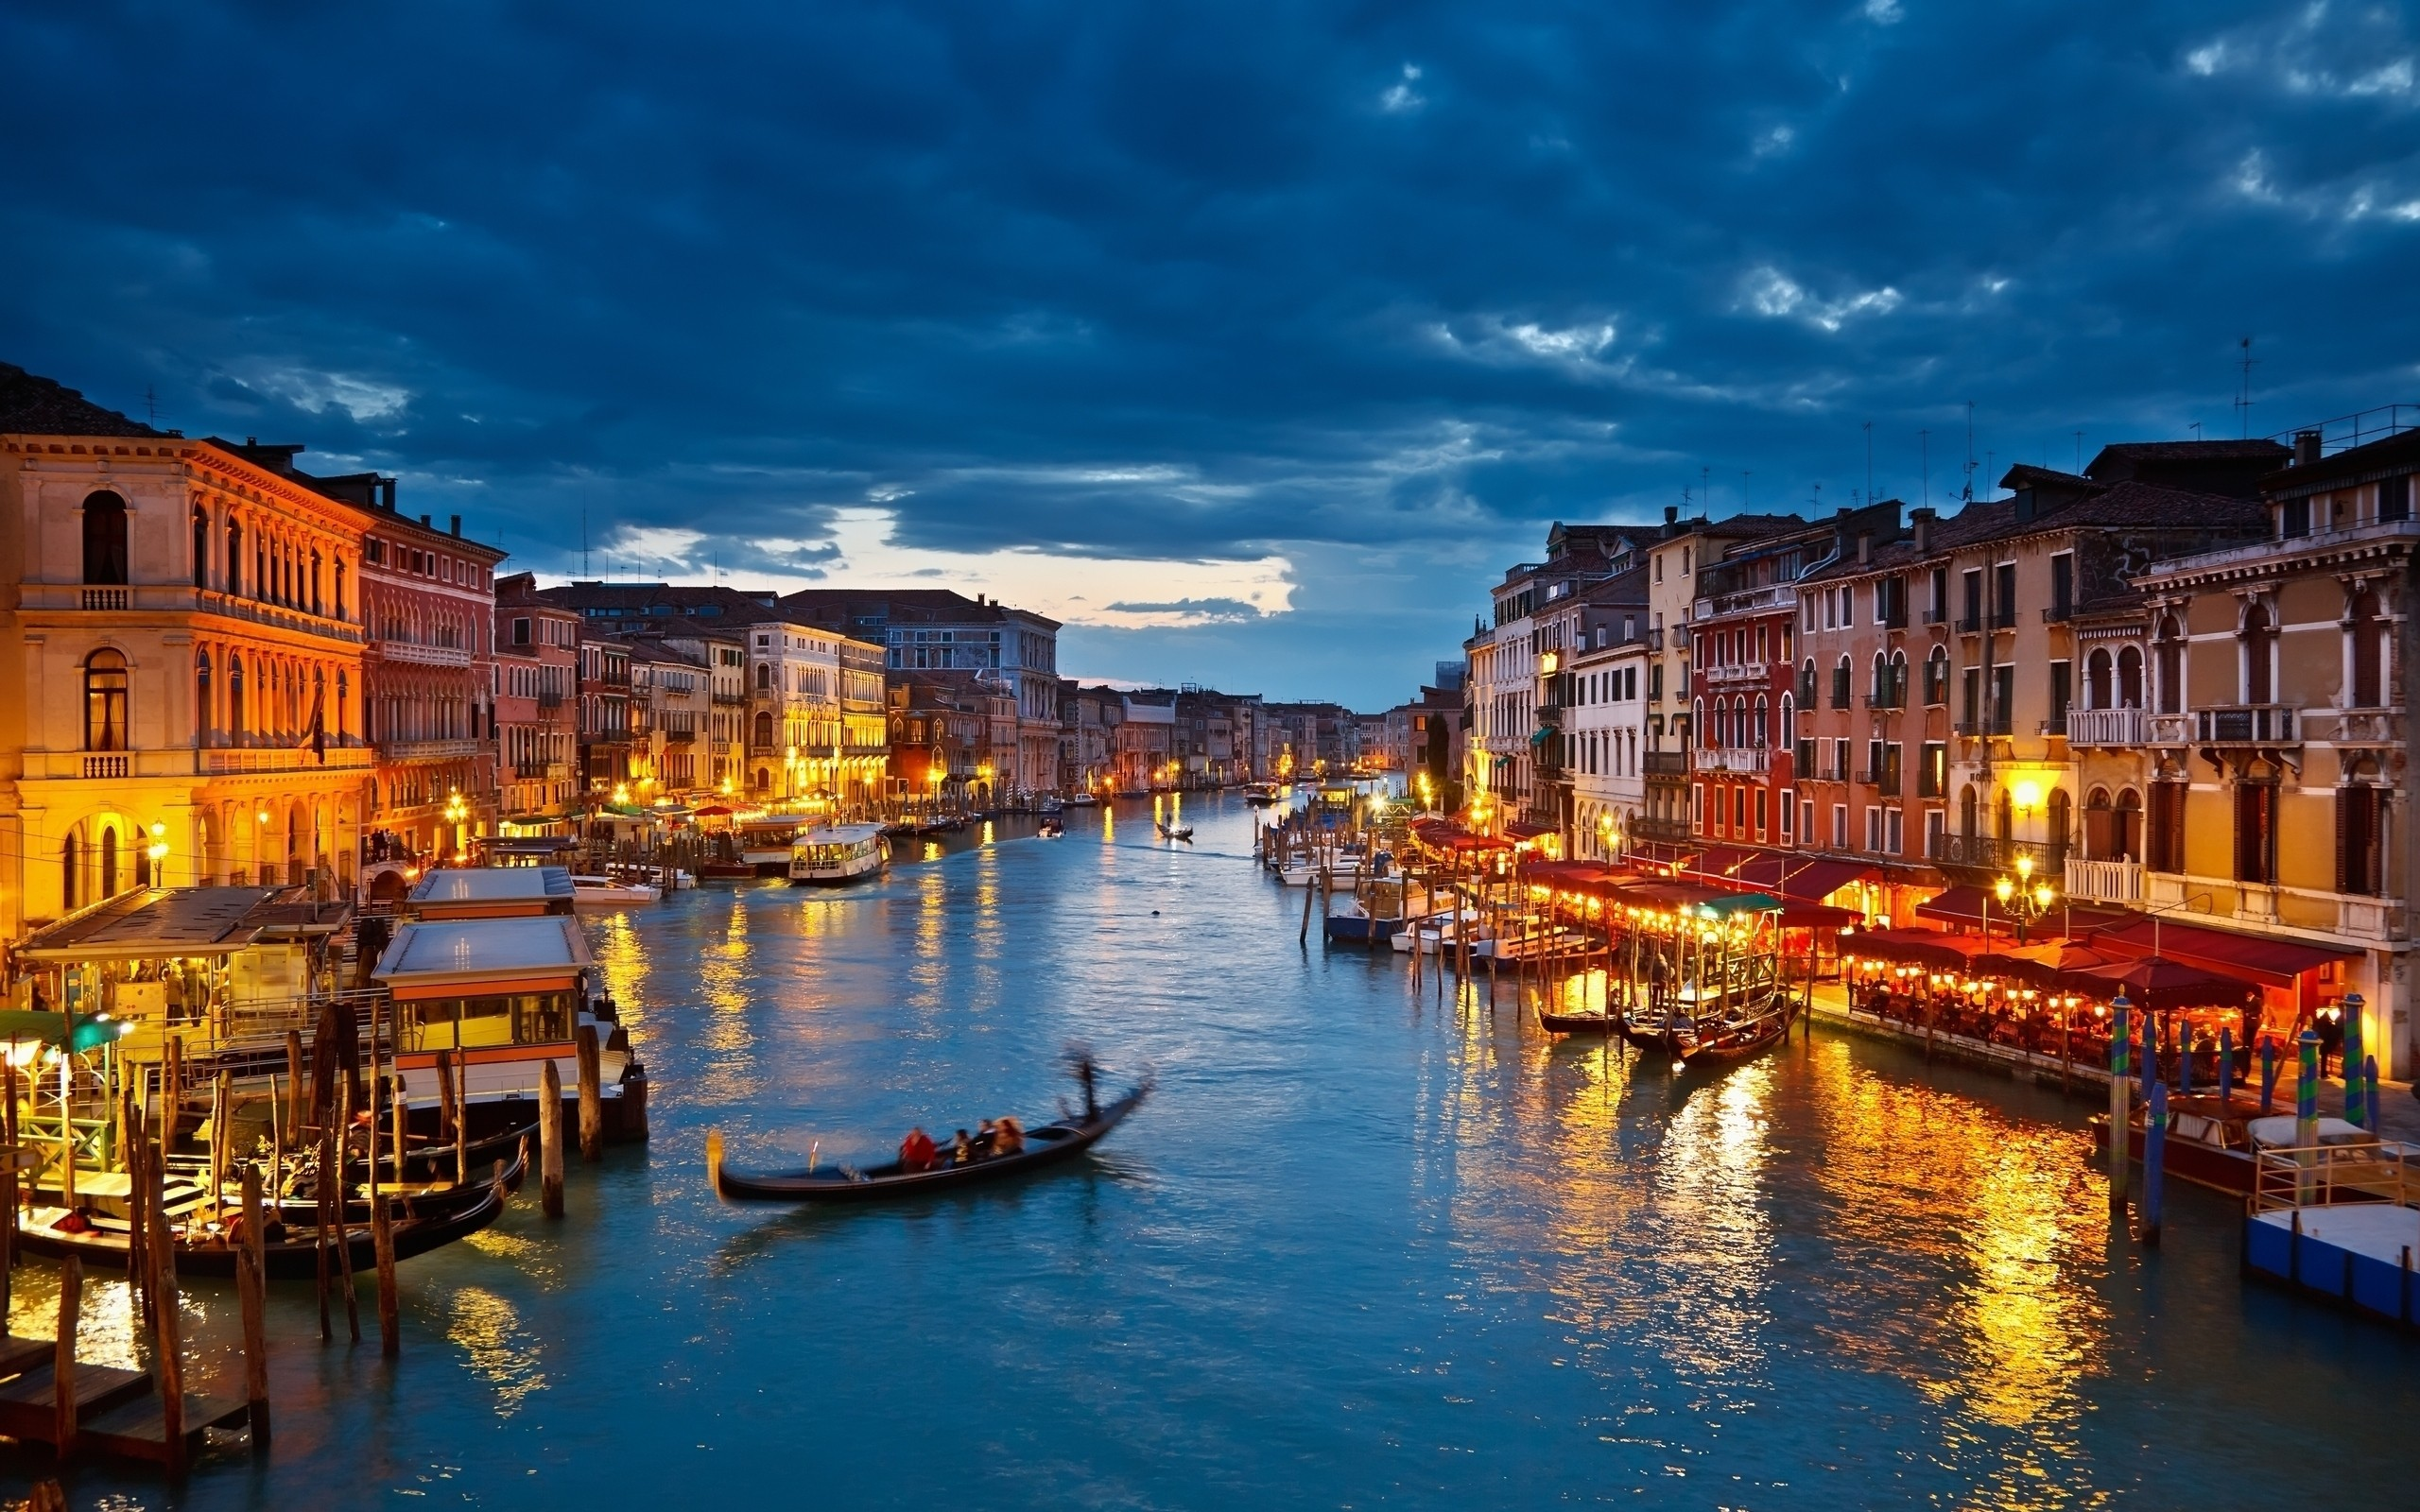 Venice At Night Painting HD Wallpaper Background Images 2560x1600